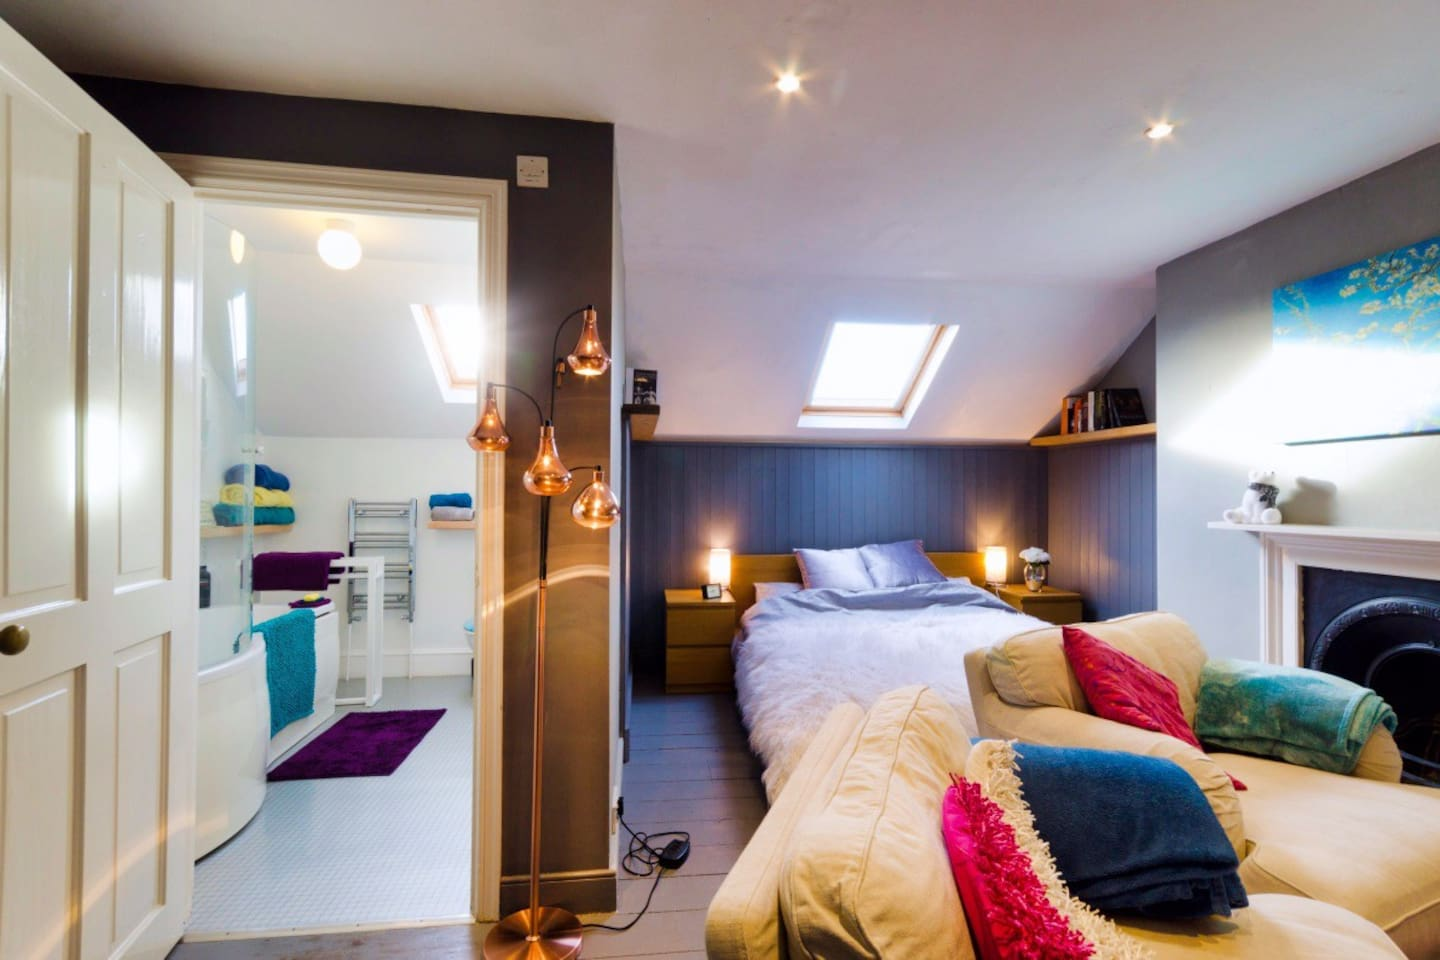 Self-contained, bright open-plan warm roof-loft space with ensuite bathroom & fast Wifi/broadband. Gas central heating can be substituted at will with electric heating. A blackout-blind is fitted in the main Velux window helping guests sleep in!